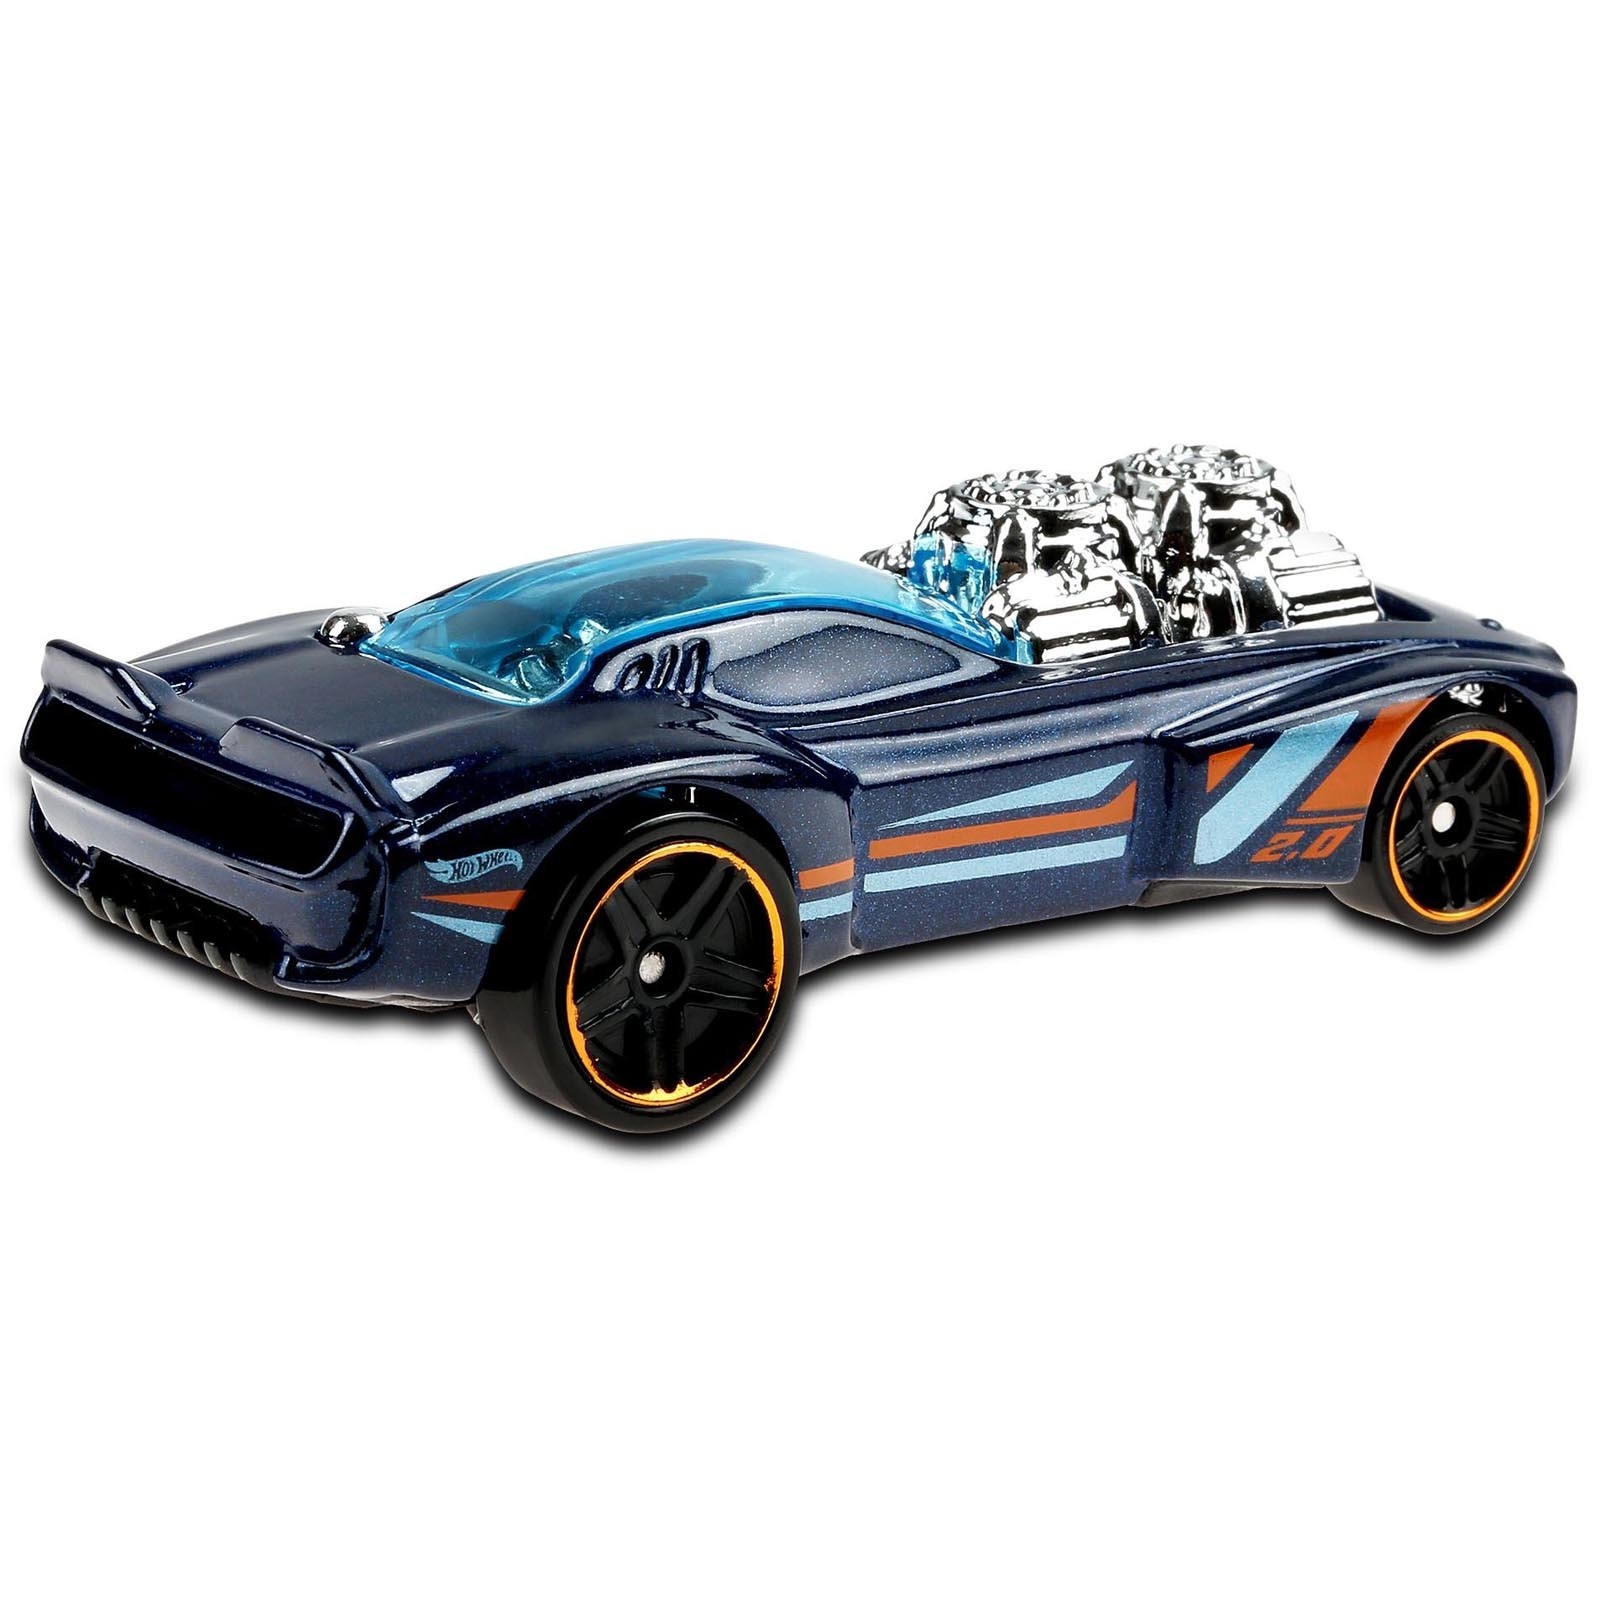 Hot Wheels - Rodger Dodger 2.0 - GHC58